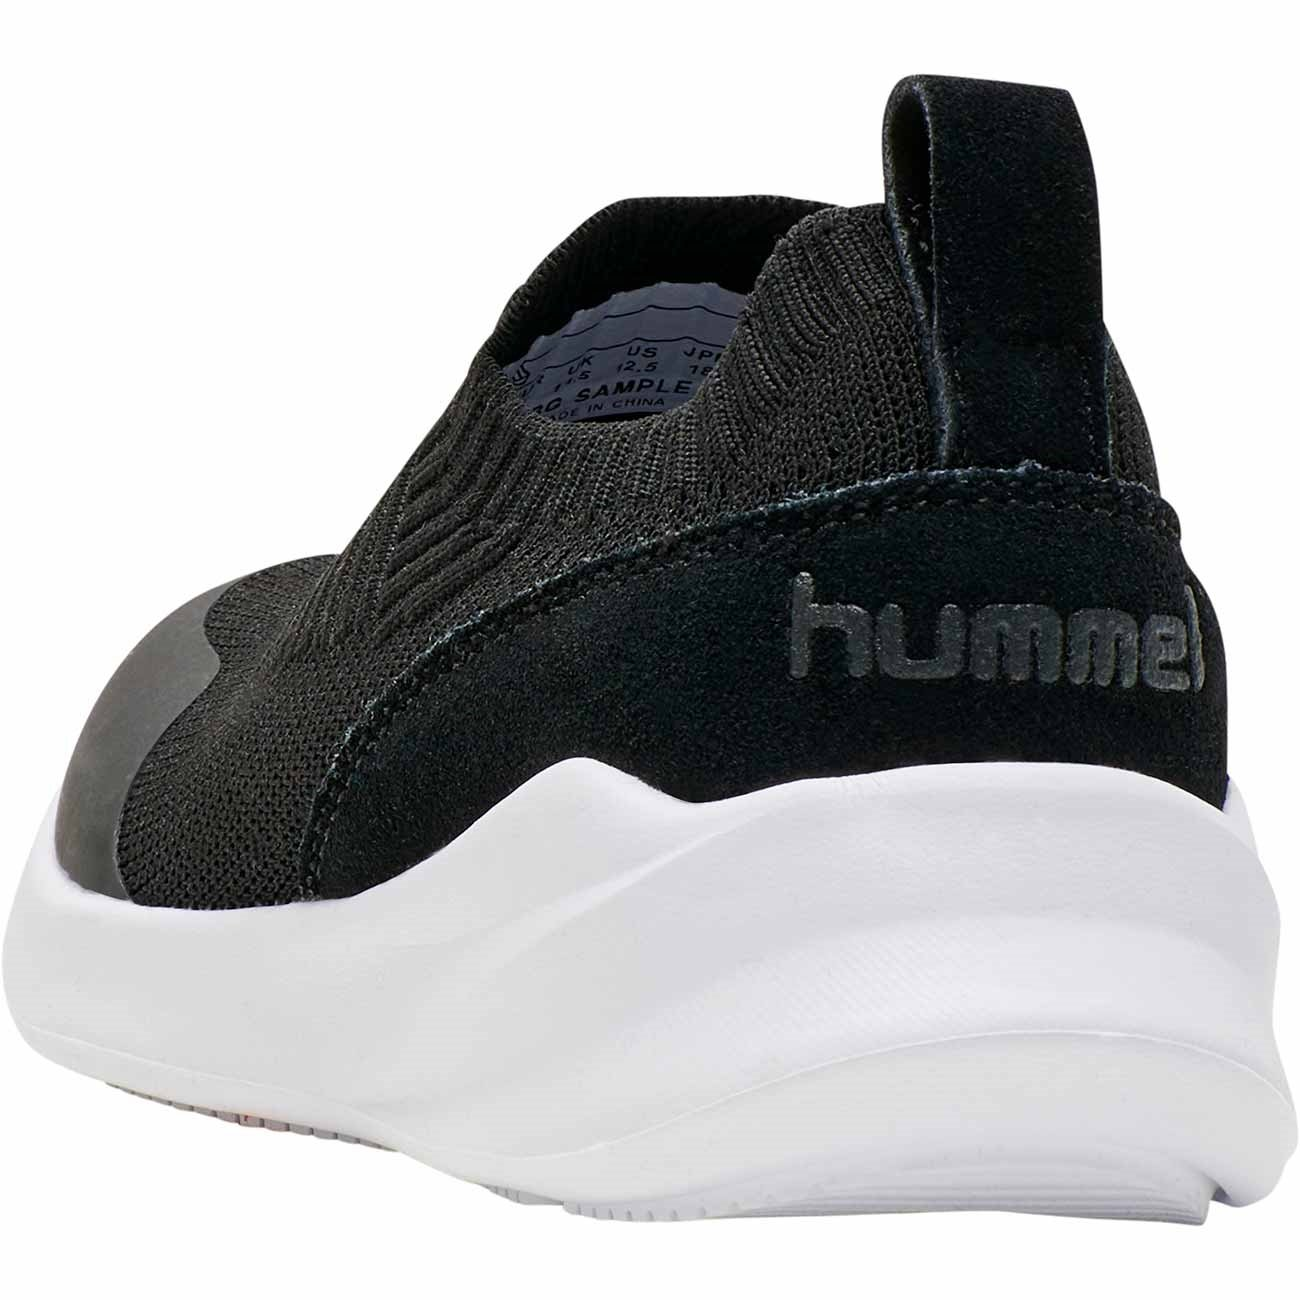 hummel-sock-shoes-sko-black-sort